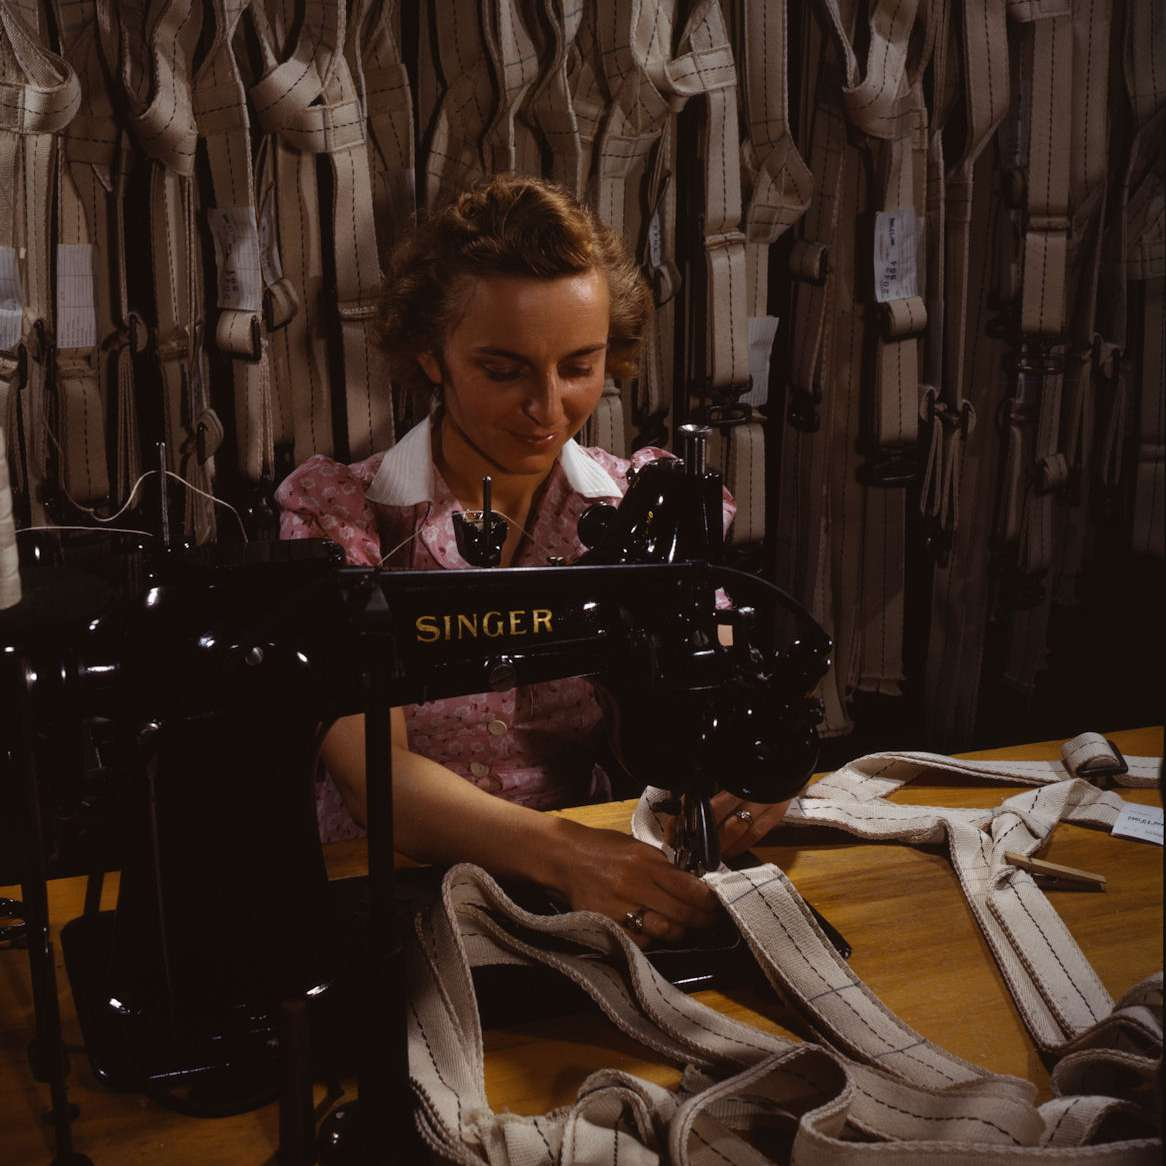 Woman Sewing Parachute Harnesses - World War II Homefront Factory